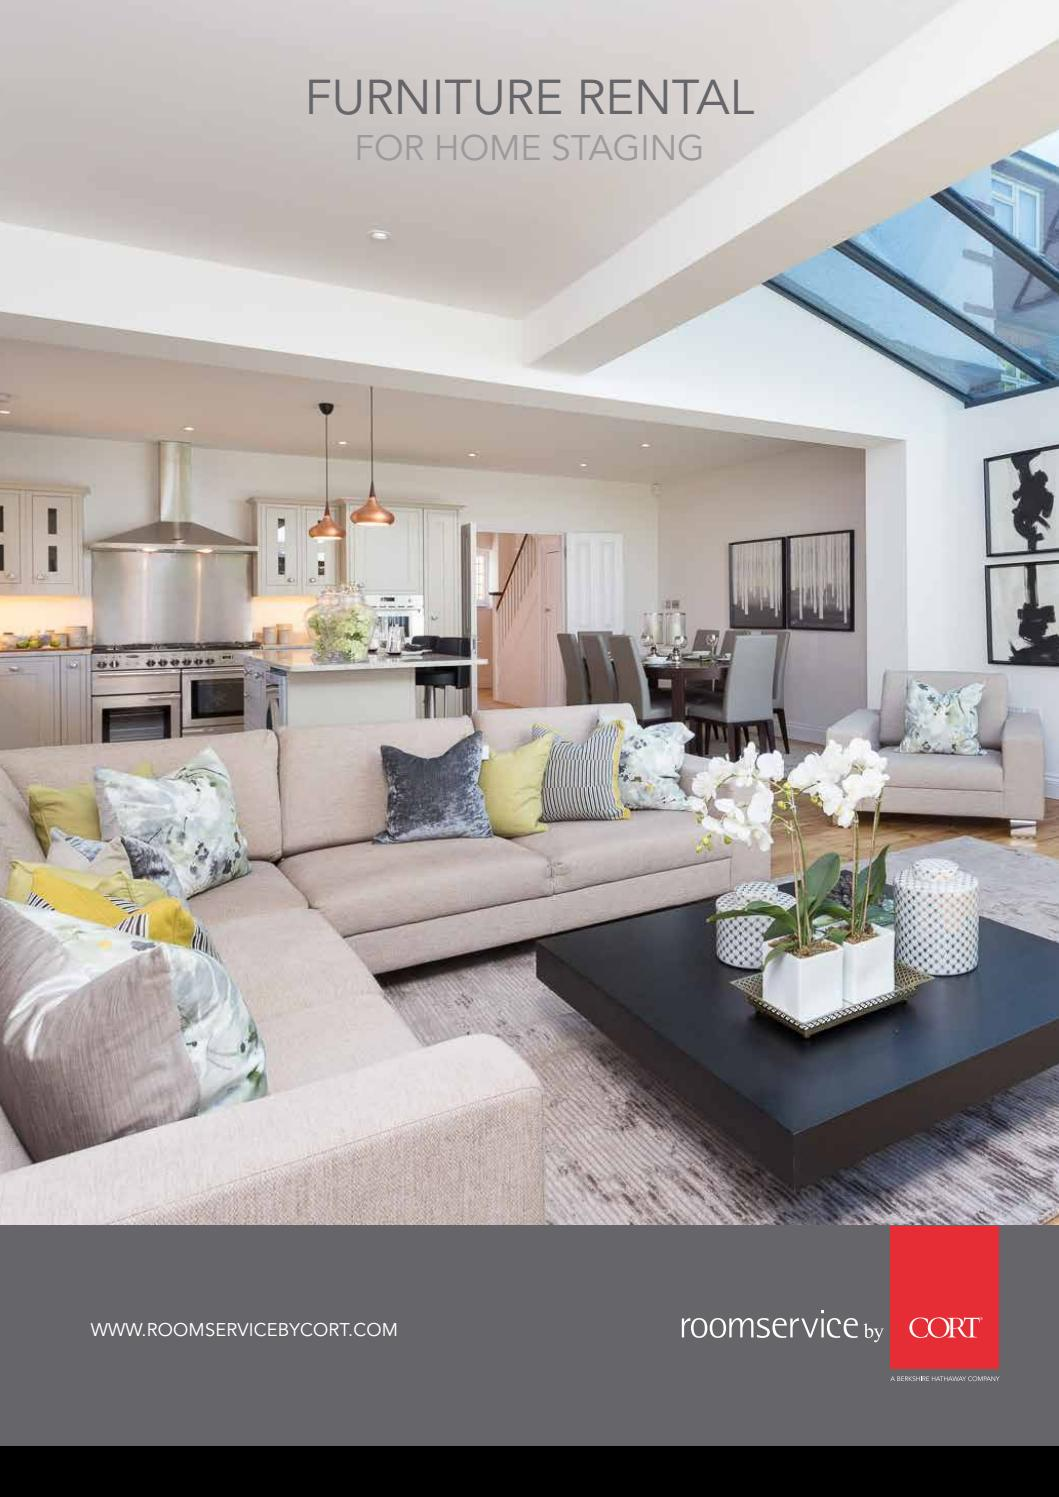 Homestaging Brochure By Roomservice By Cort Issuu